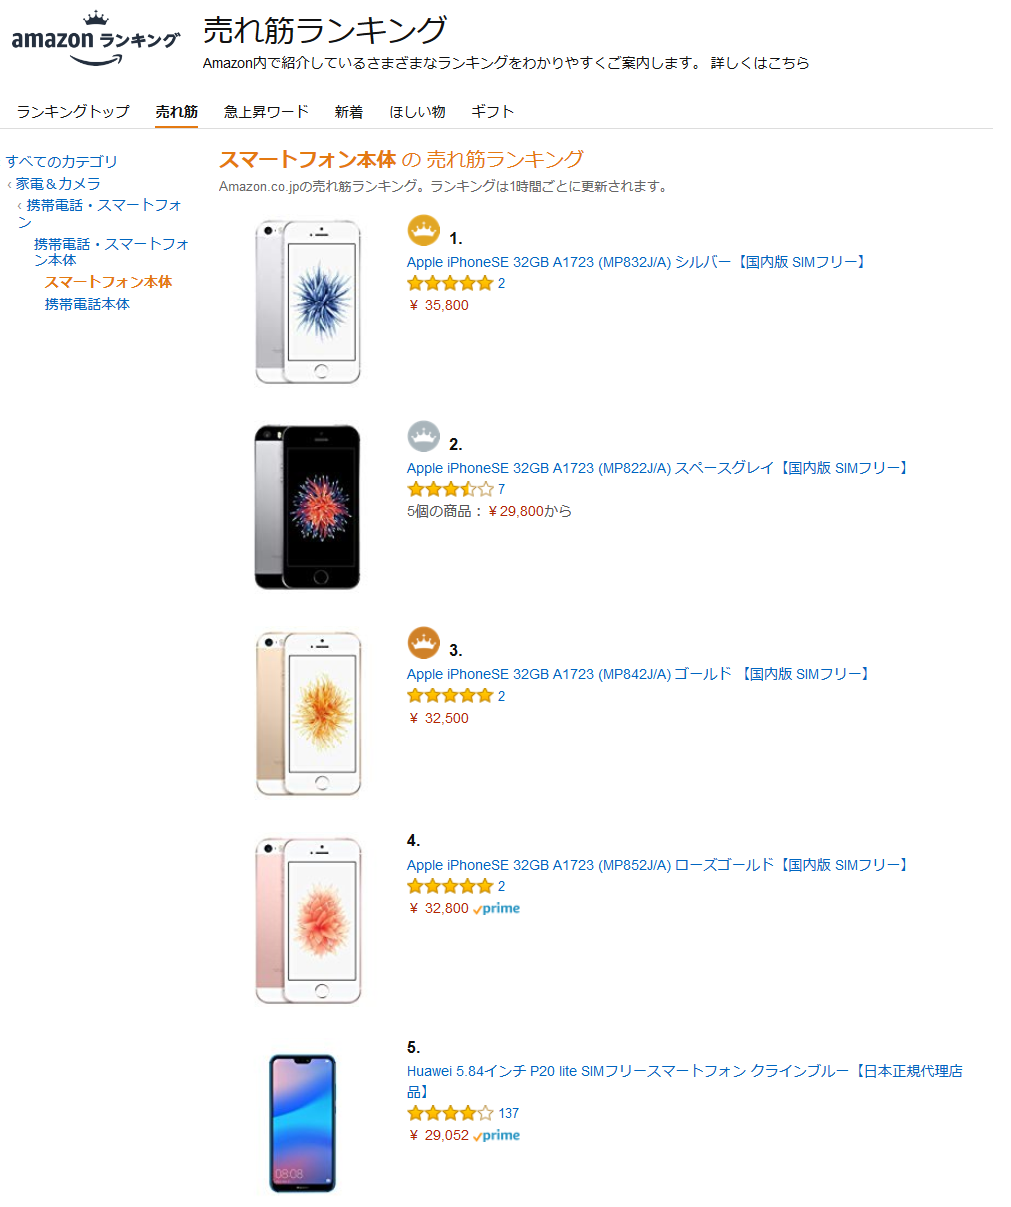 2018-09-14 Amazon Smartphone Best Seller Ranking